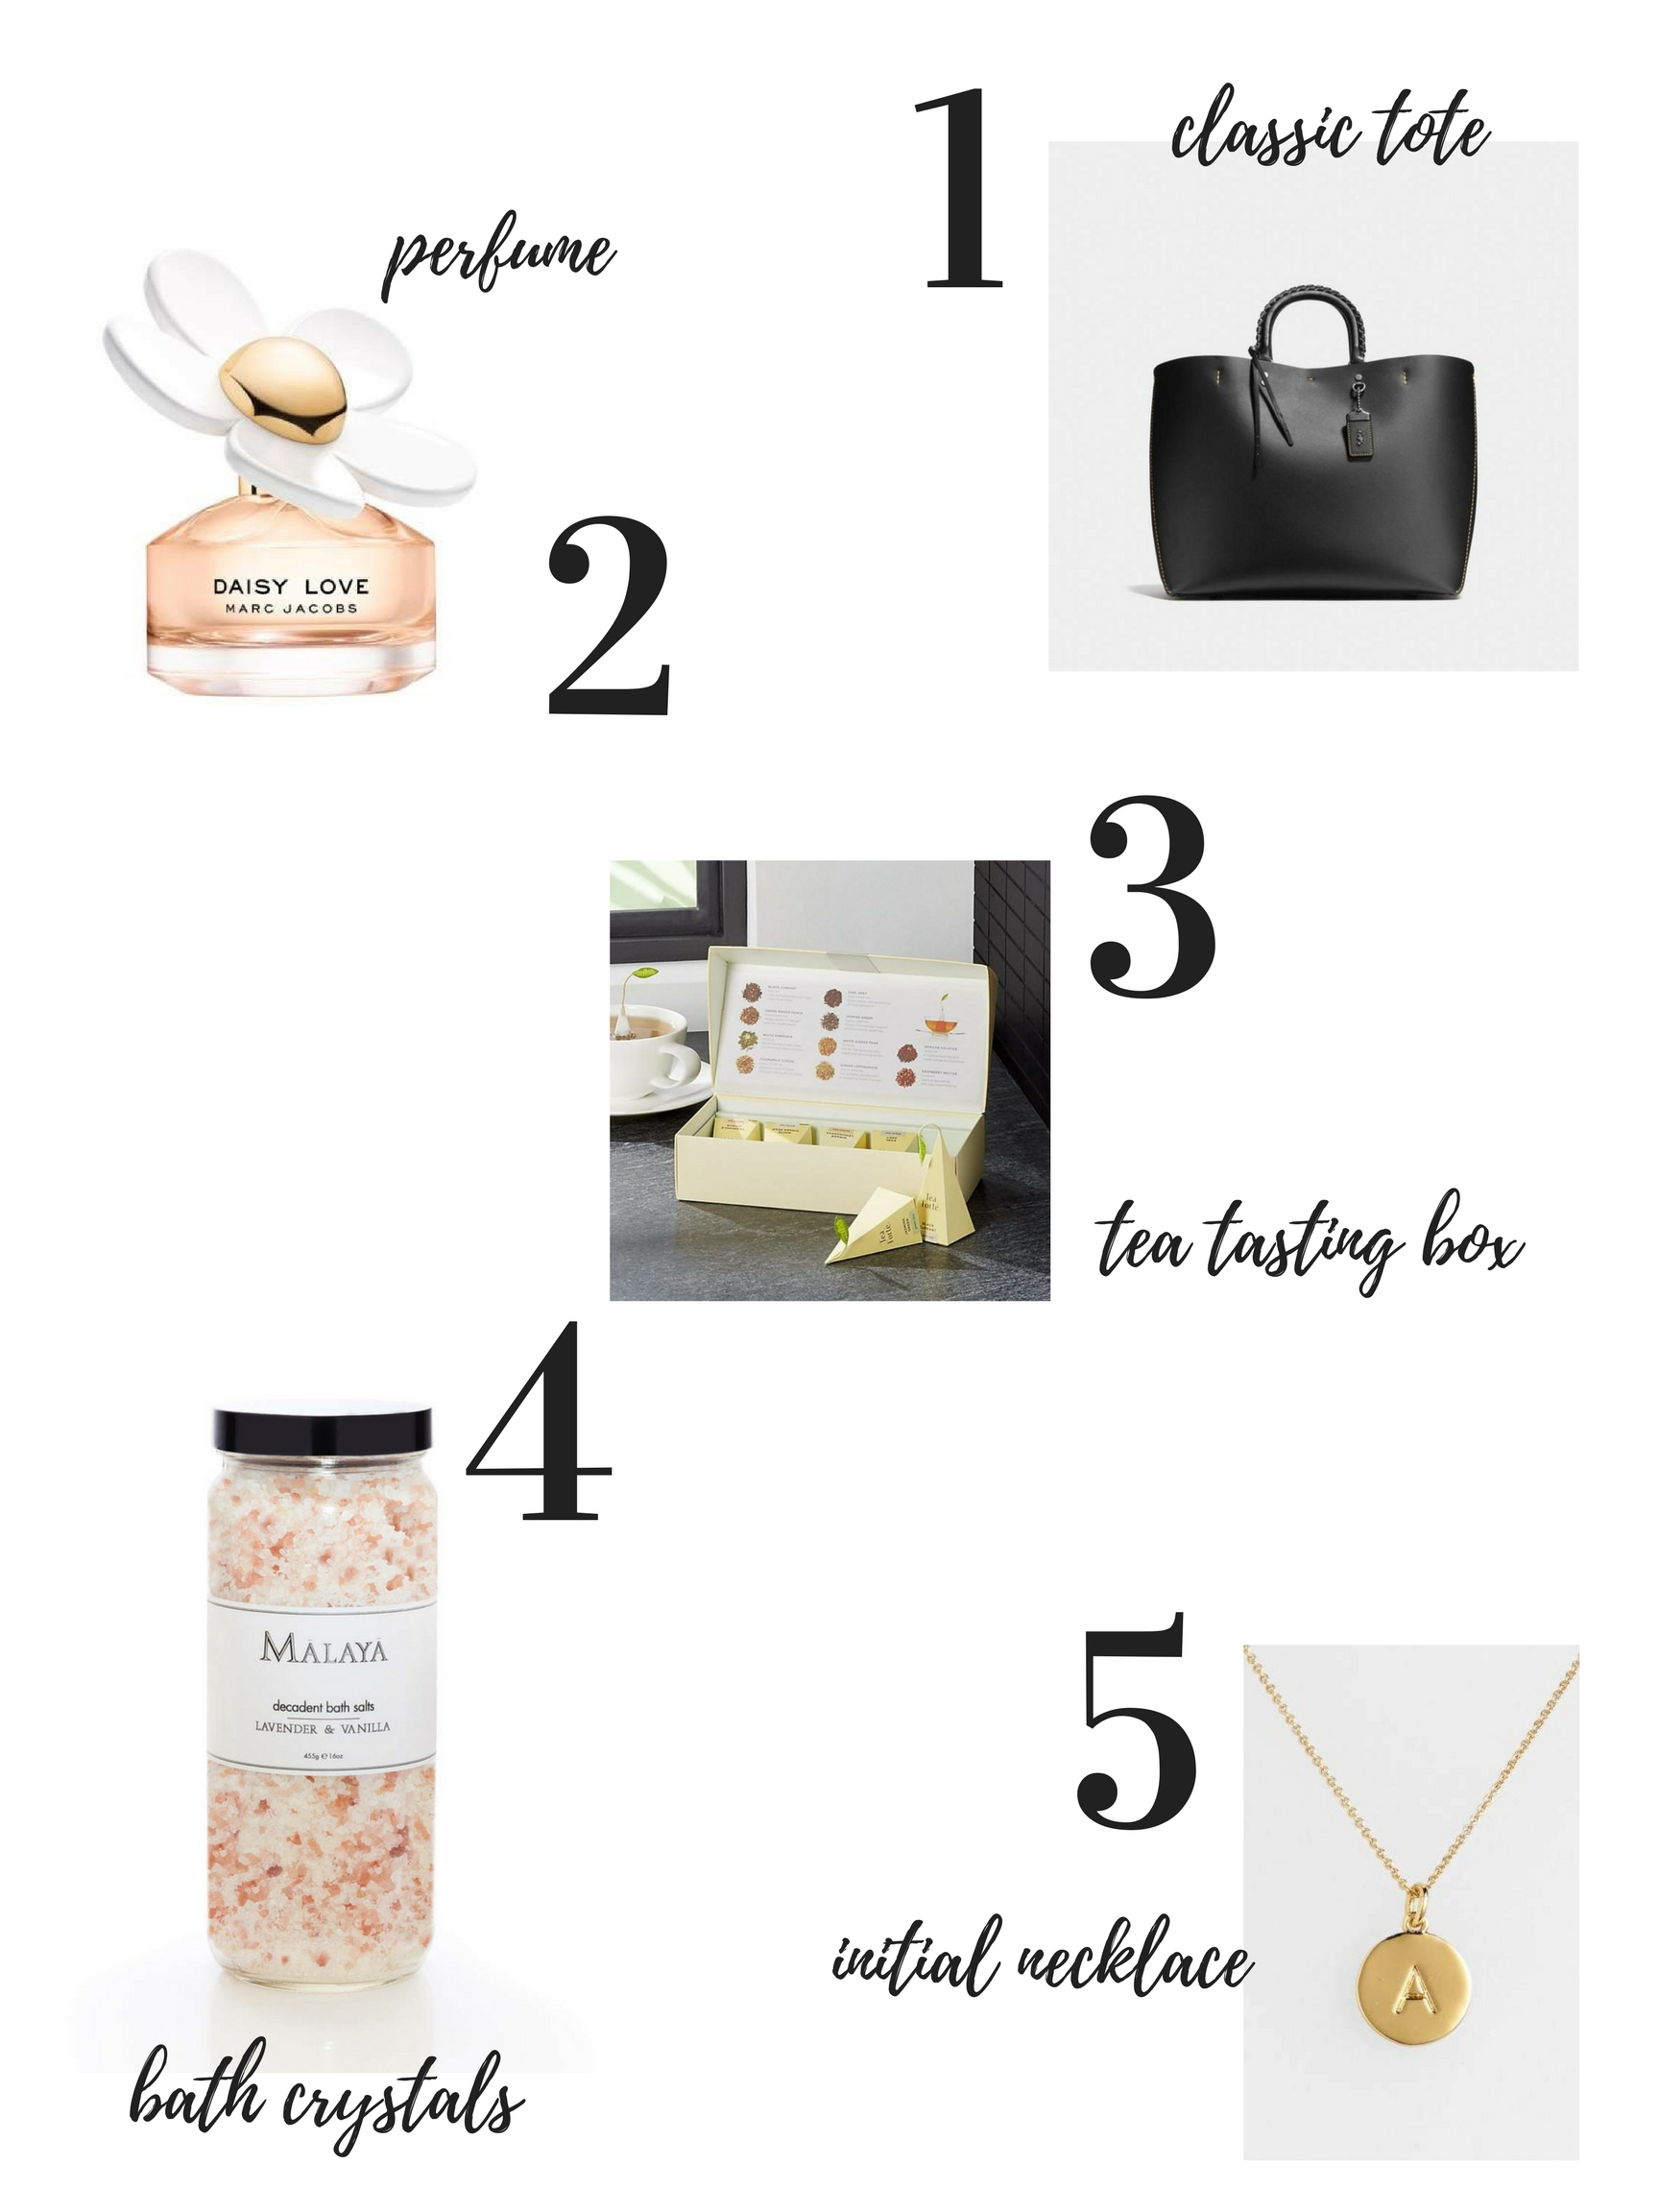 Mother's Day Gift Ideas - Mother's Day Gifts - Mother's Day Gift Guide - #heartandseam #mothersday  www.heartandseam.com